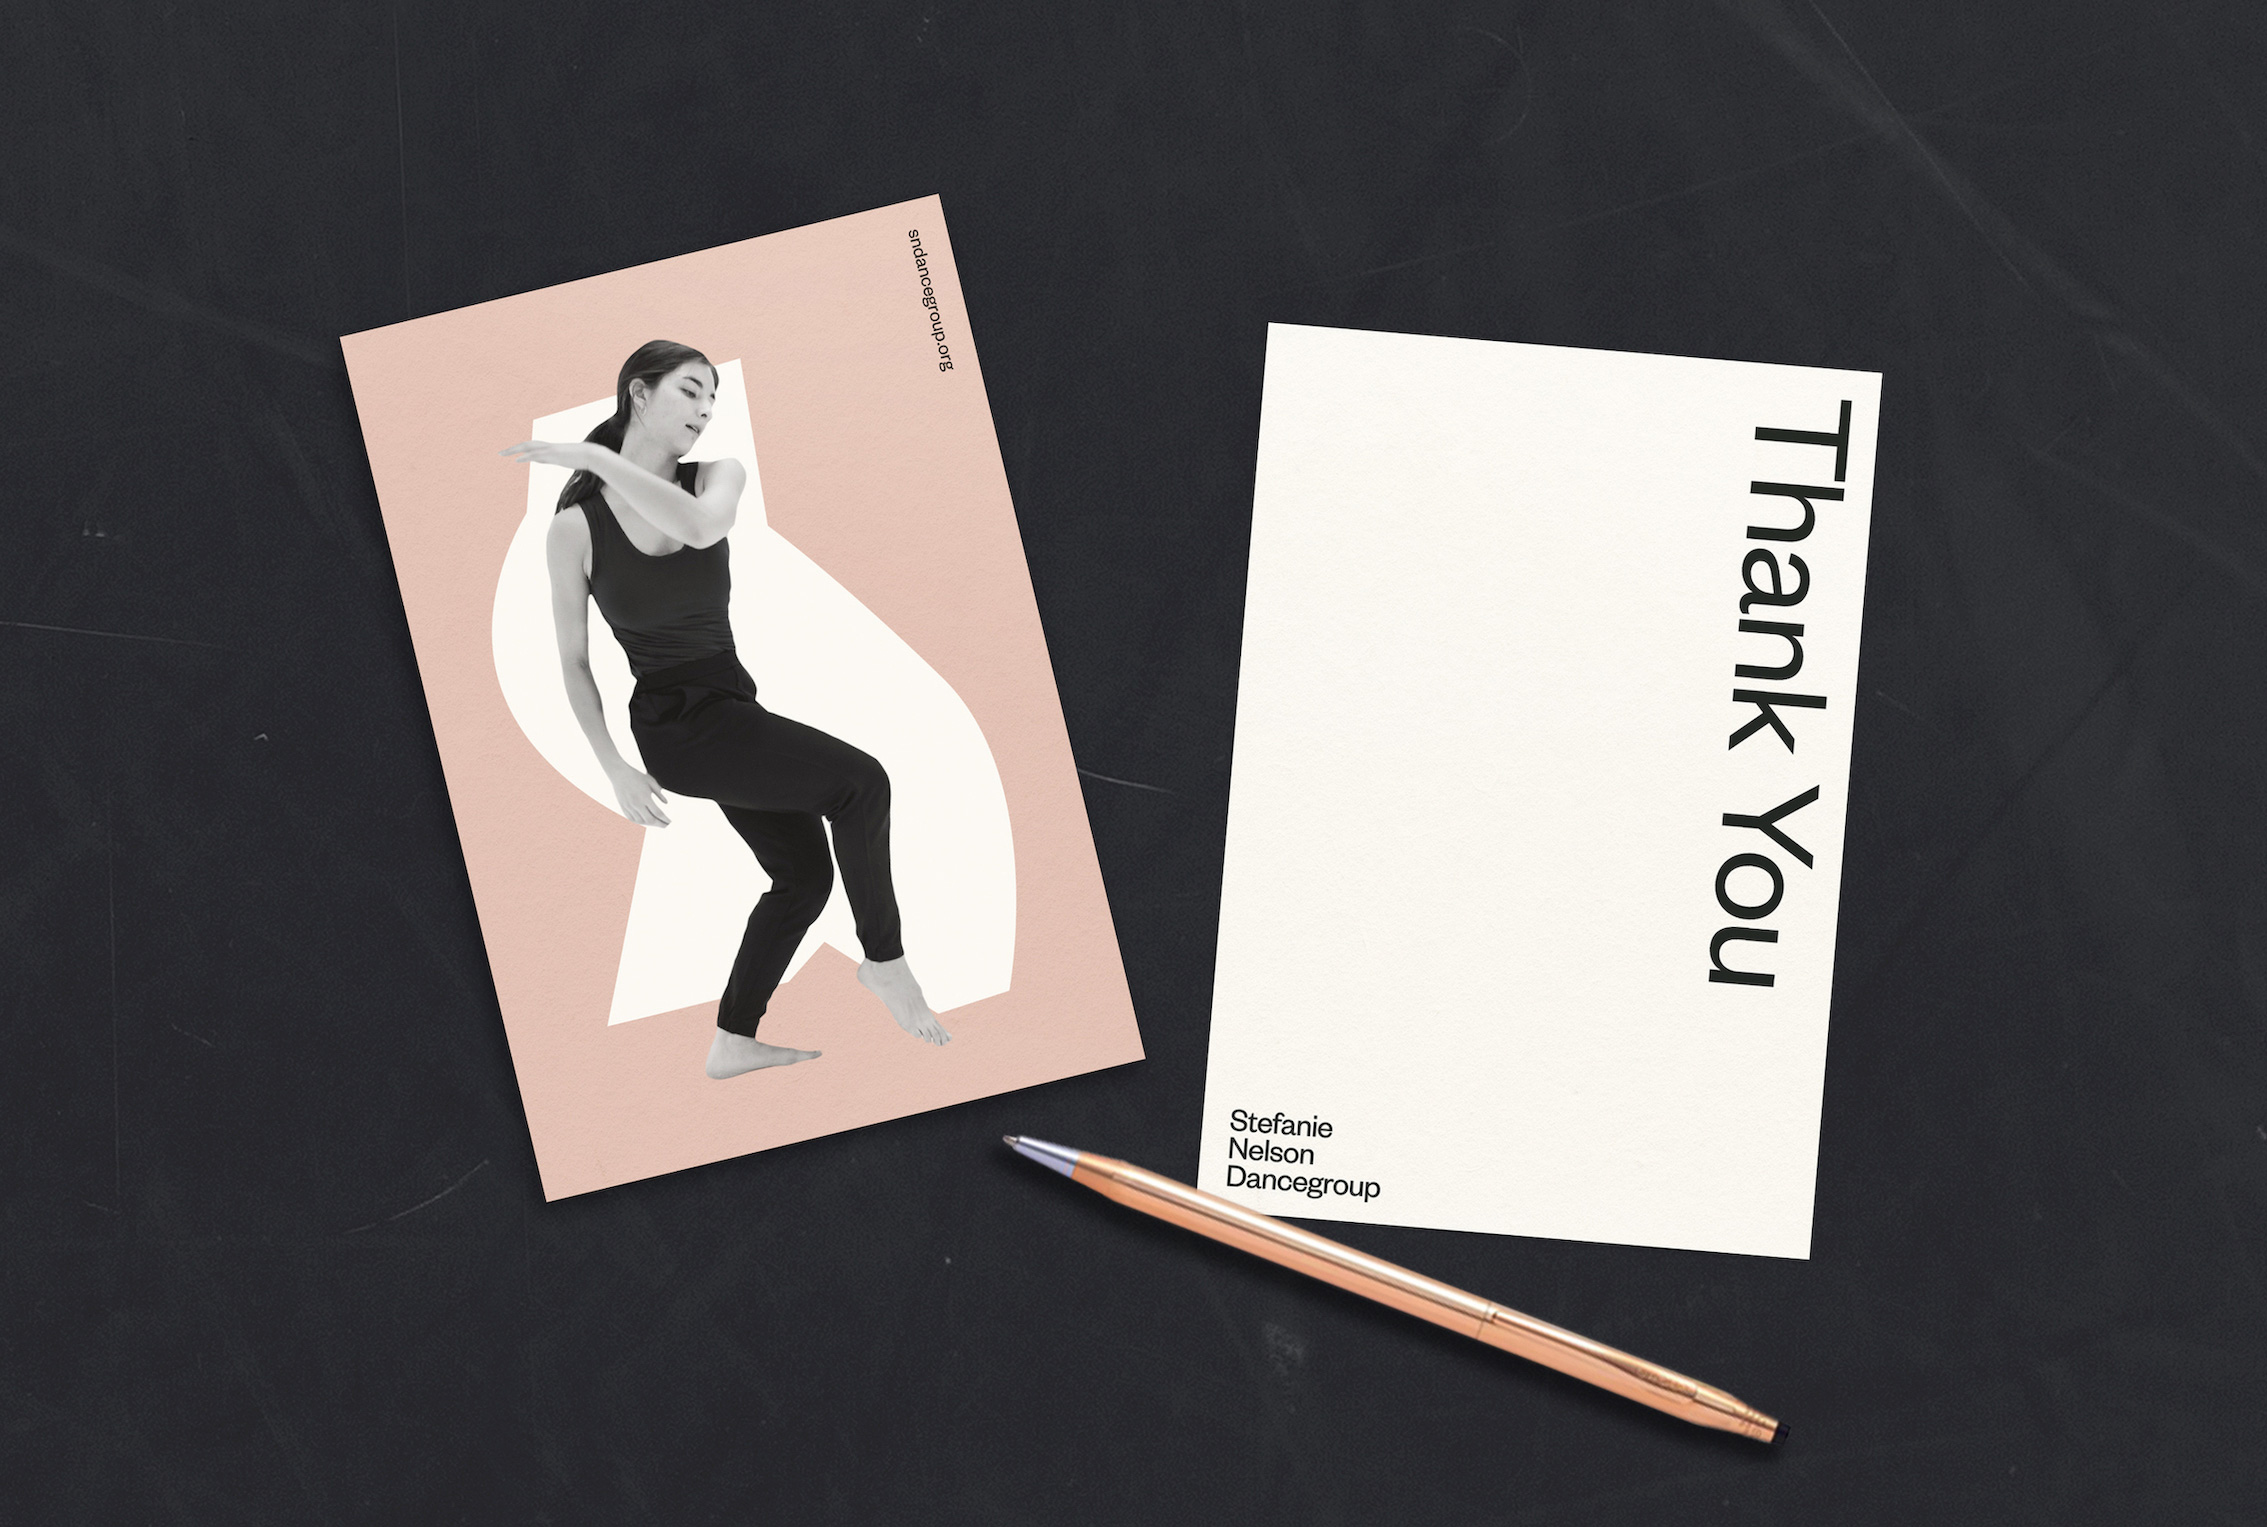 New Logo and Identity for Stefanie Nelson Dancegroup by Gretel